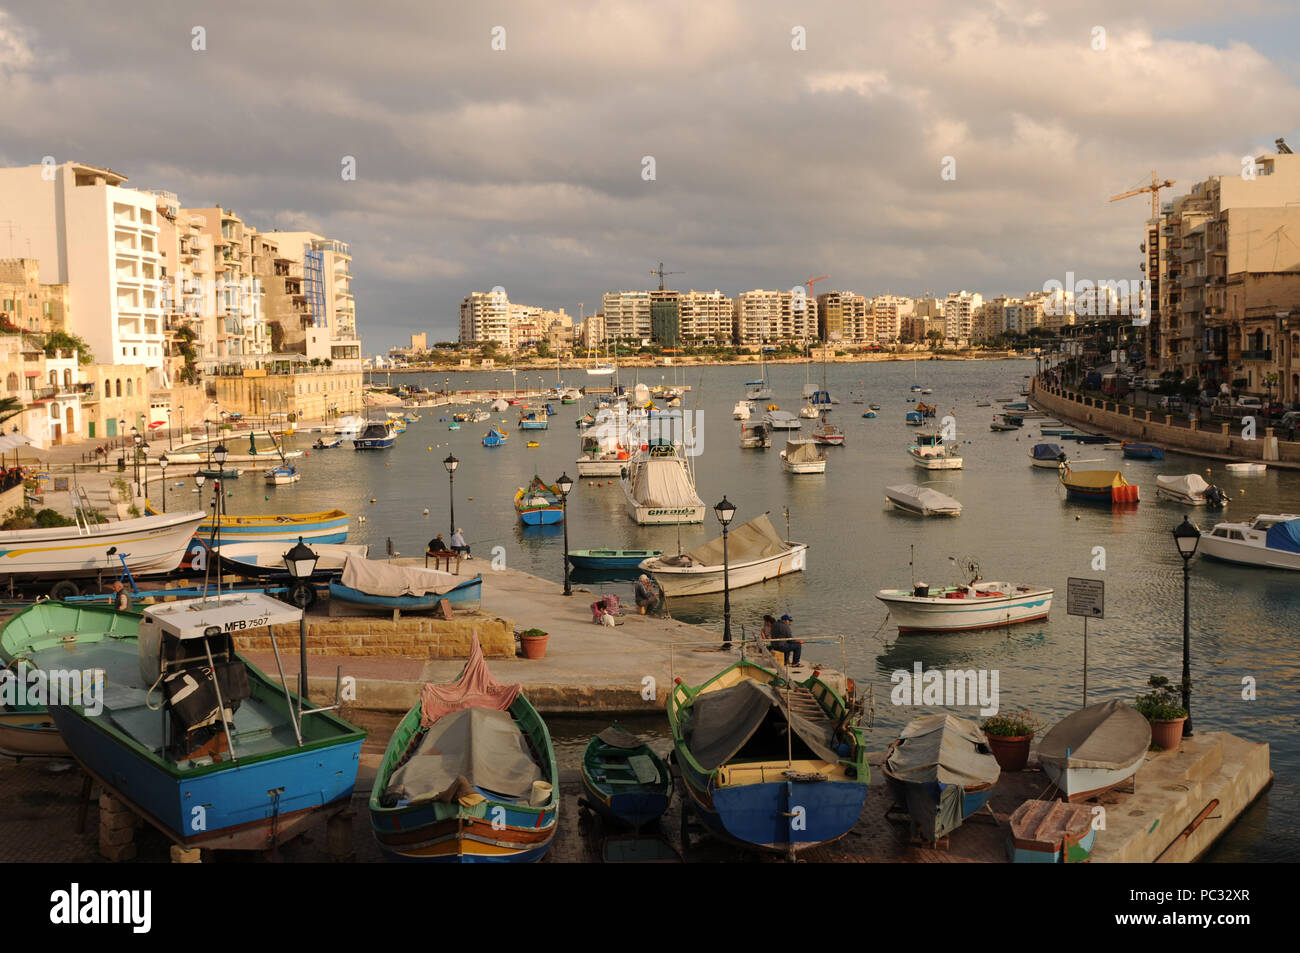 St. Juliens Bay on Malta Island with fisher and sailing boats. - Stock Image